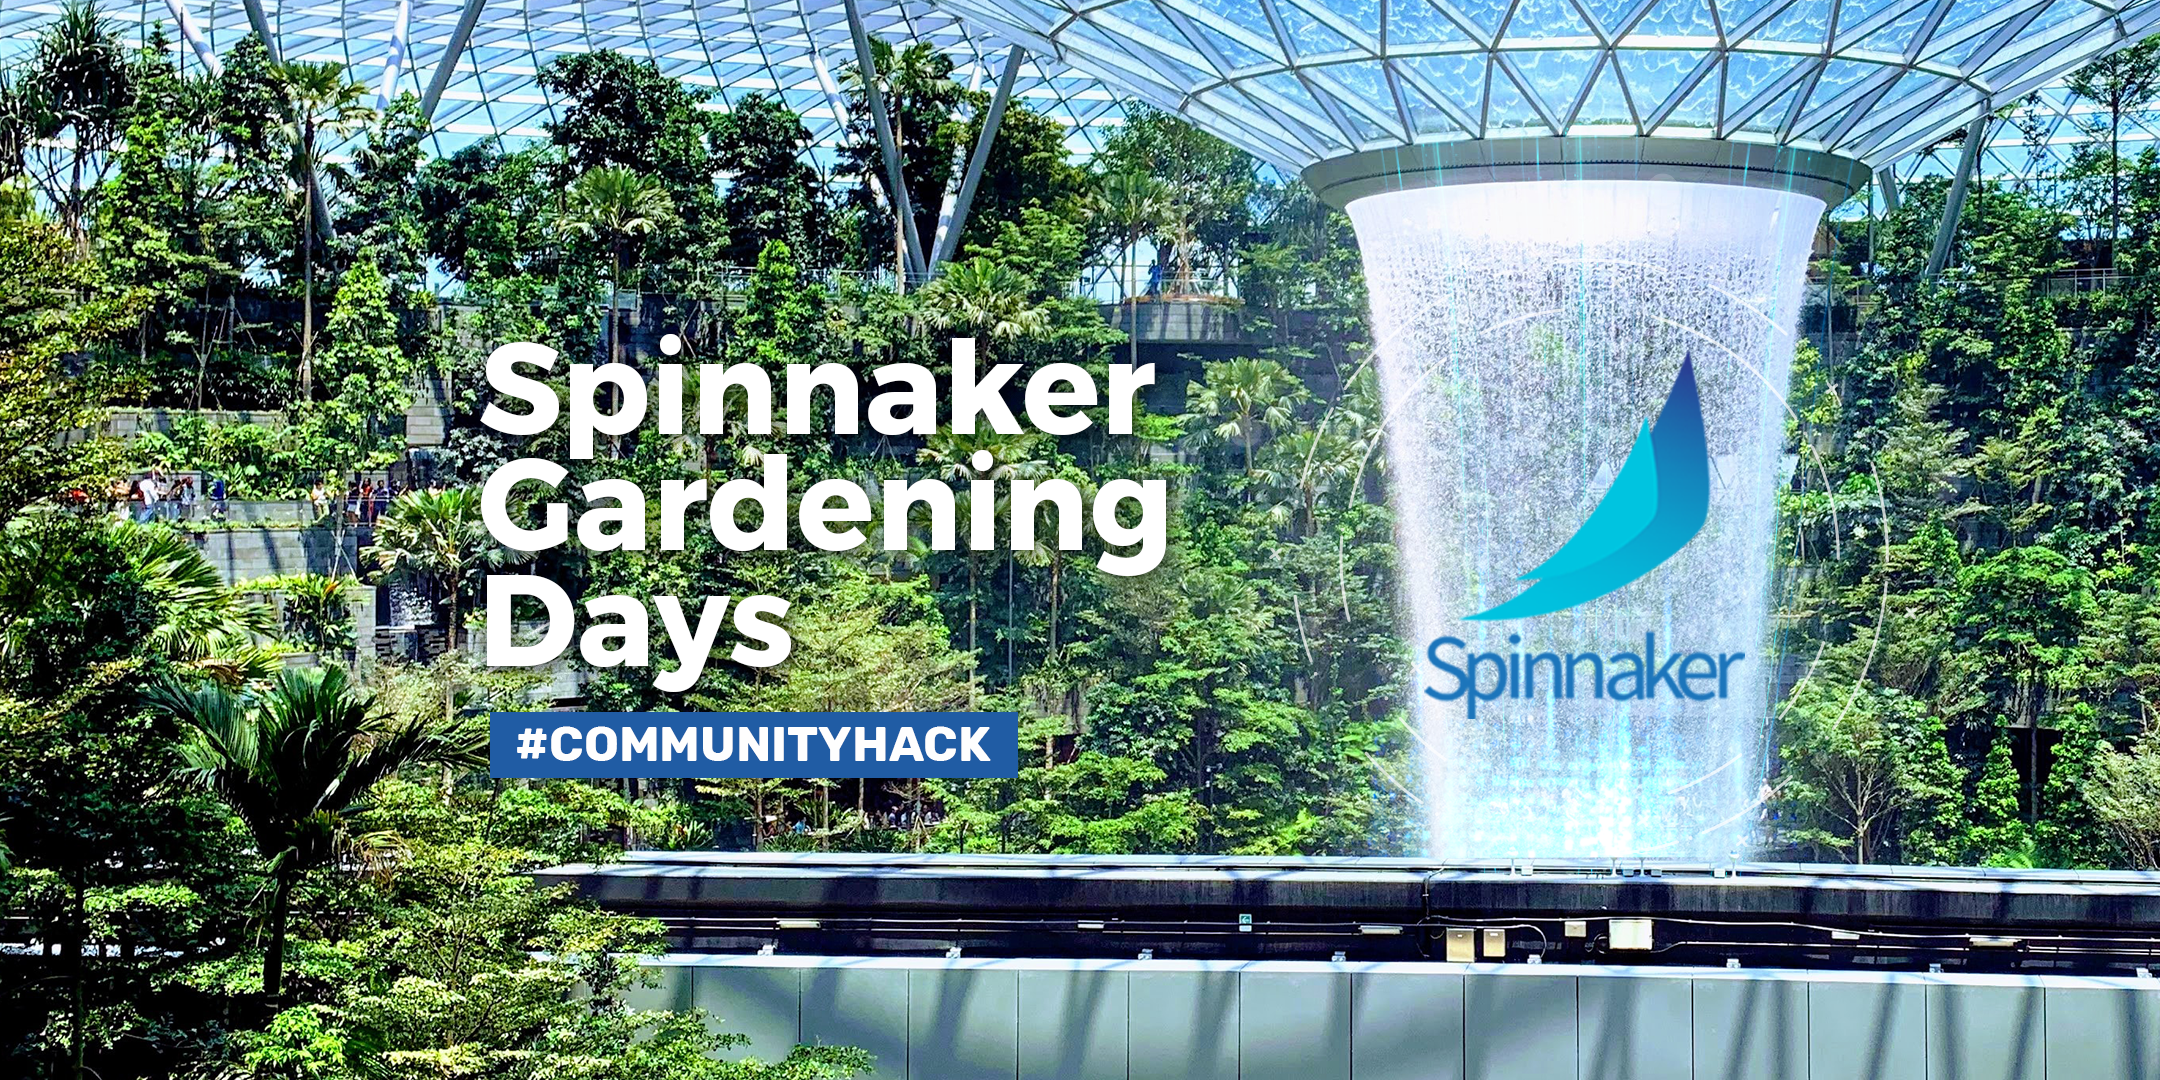 Spinnaker Gardening Days Community Hack